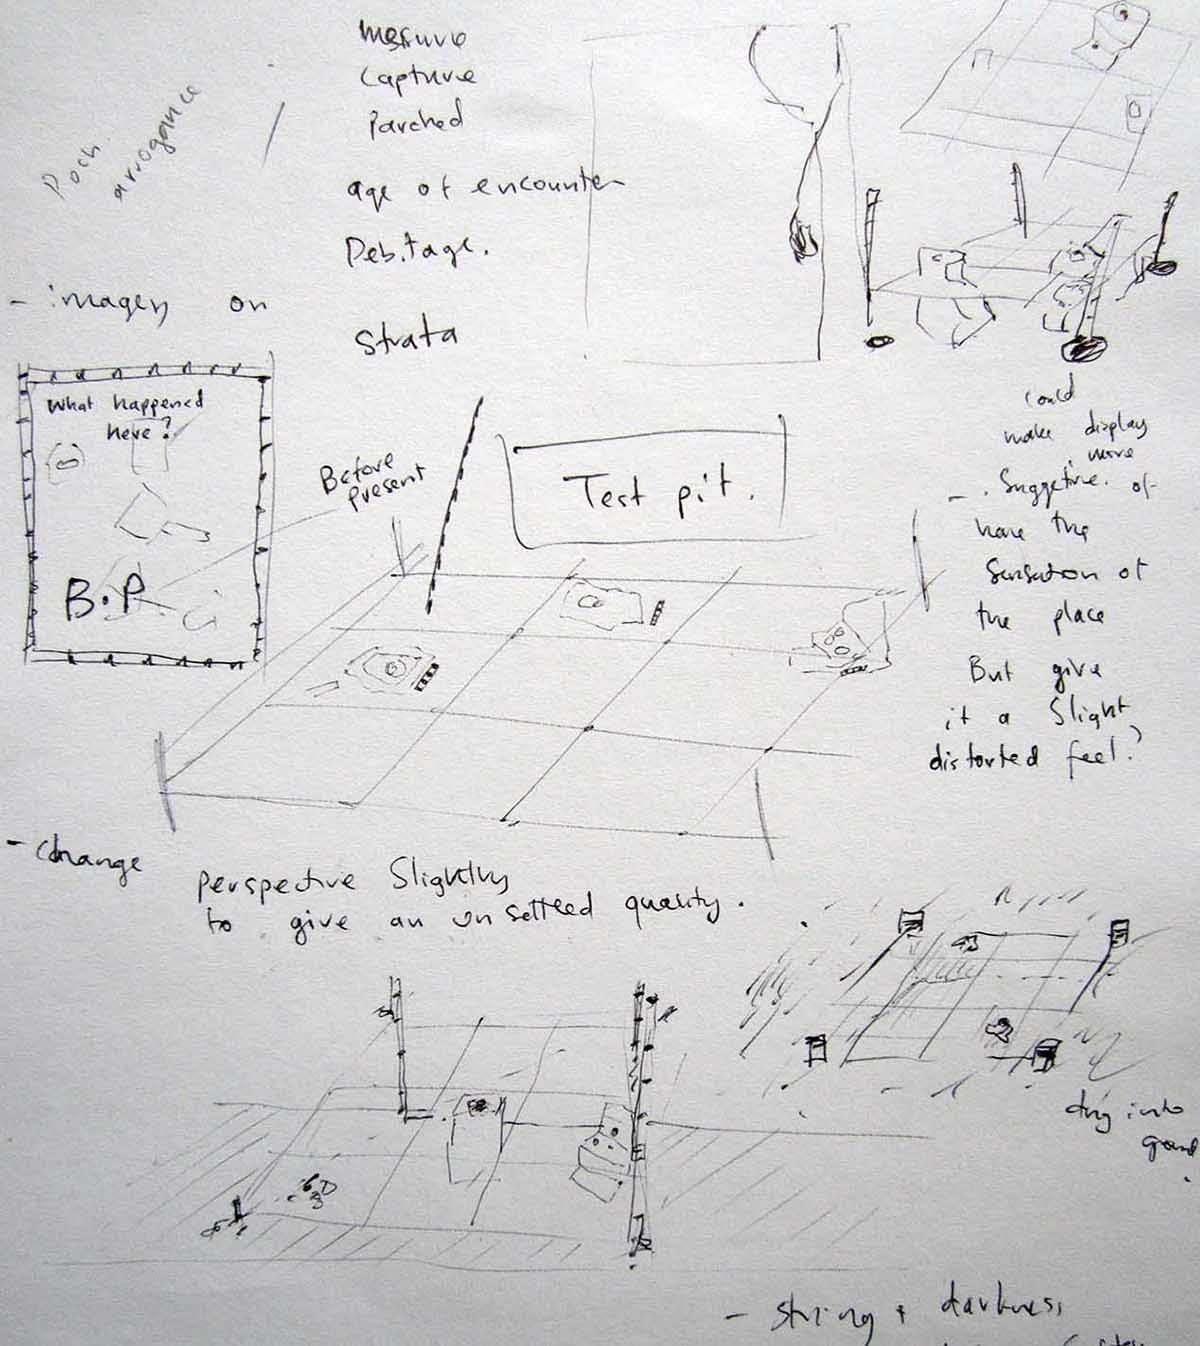 Museum of incomplete stories Jen Laracy. sketch of team exhibition